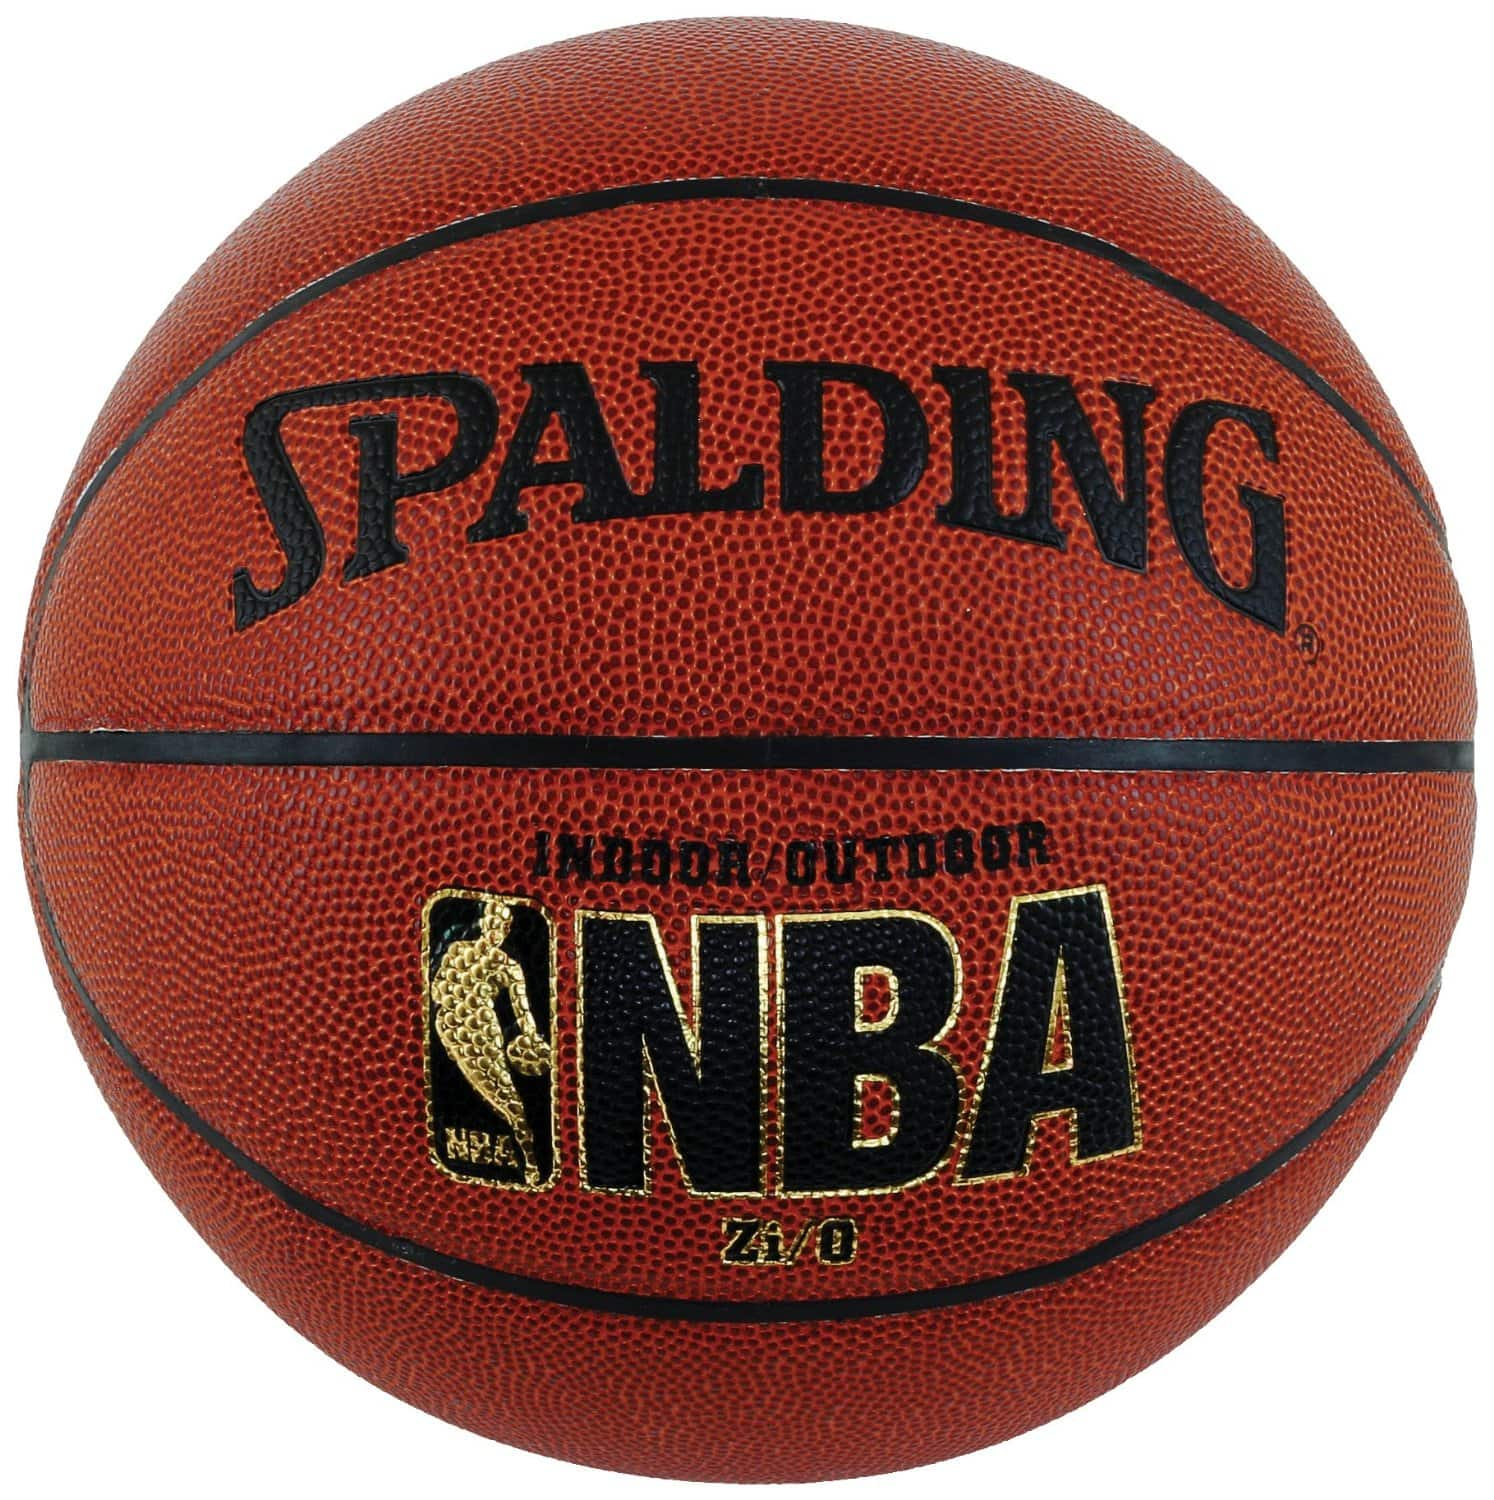 Spalding NBA Zi/O Indoor/Outdoor Basketball - Official Size 7 $19.99